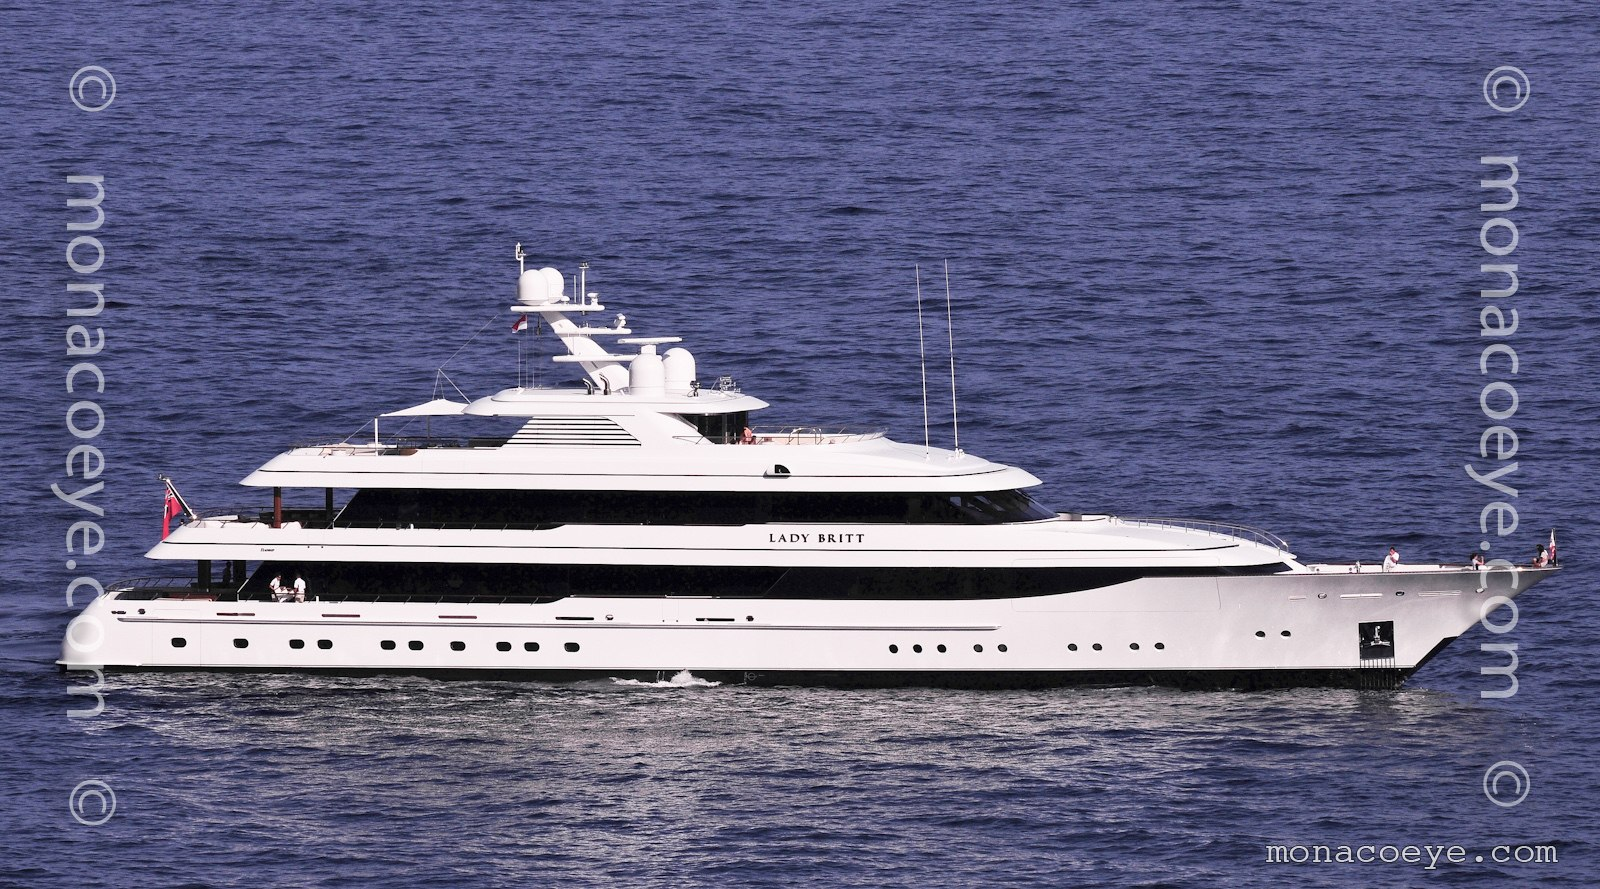 Lady Britt, 2011 design from Feadship. New launch.